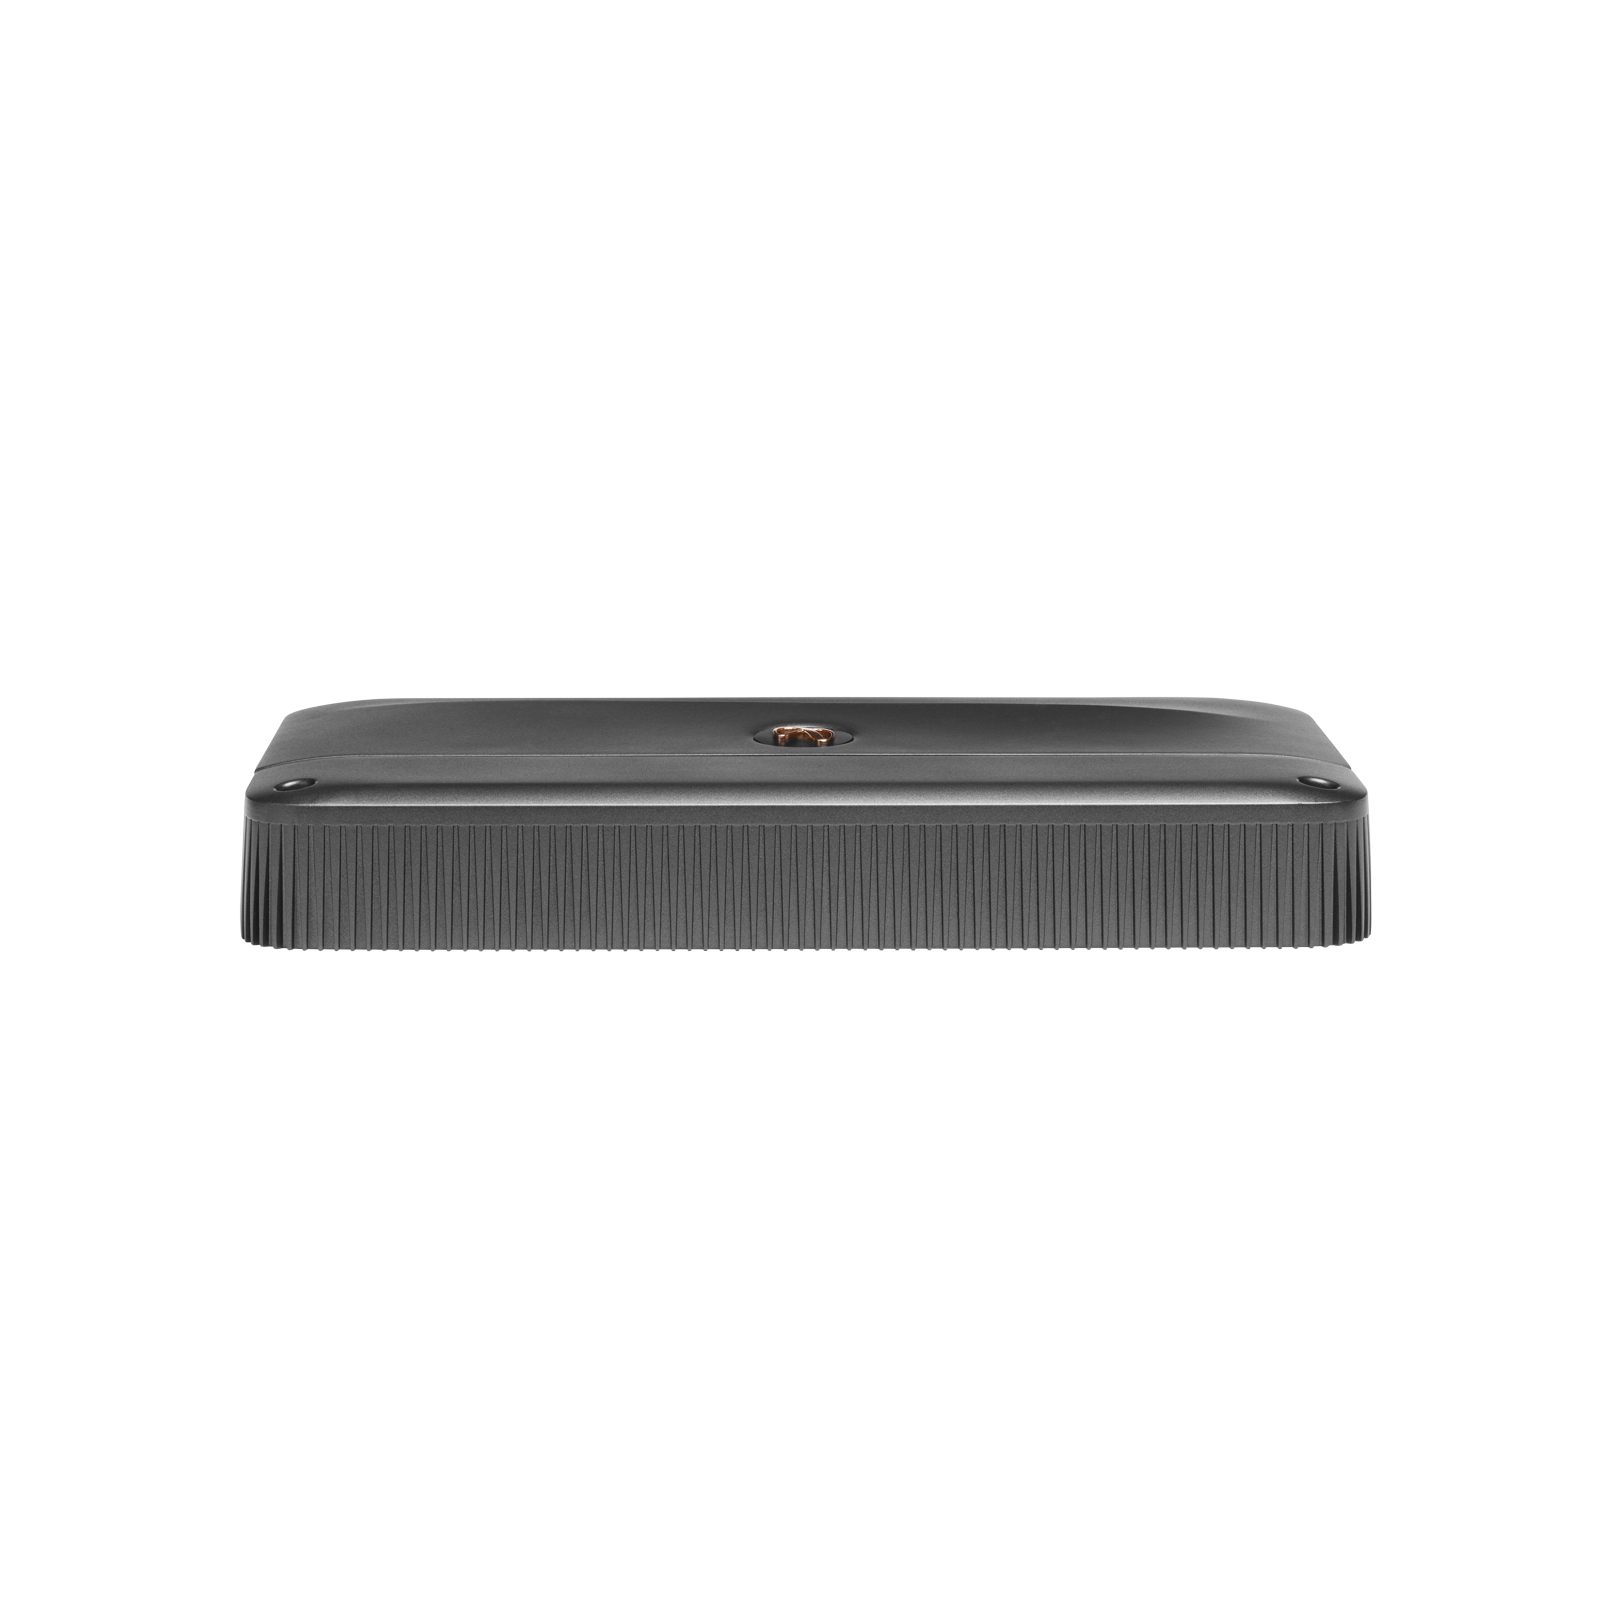 Reference 7005A - Black - High performance 5 channel car amplifier - Back